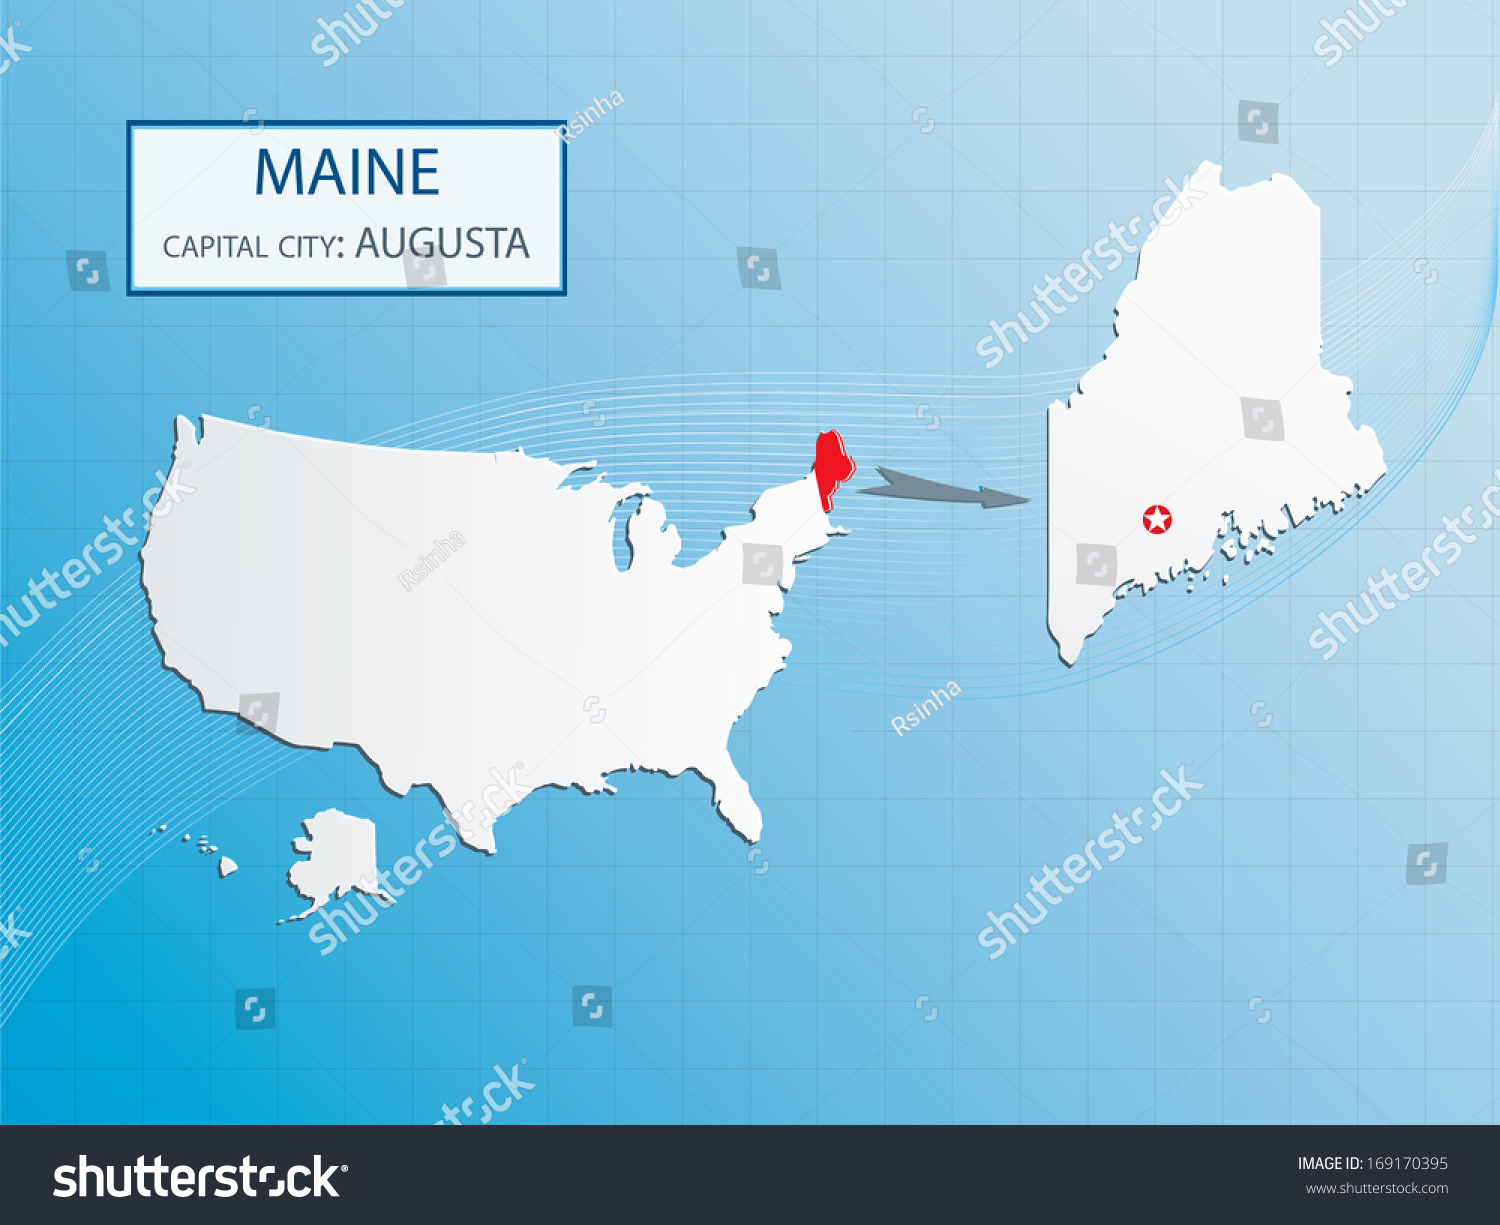 Maine Location On The US Map Maine Map Showing The Major Travel - Maine state usa map